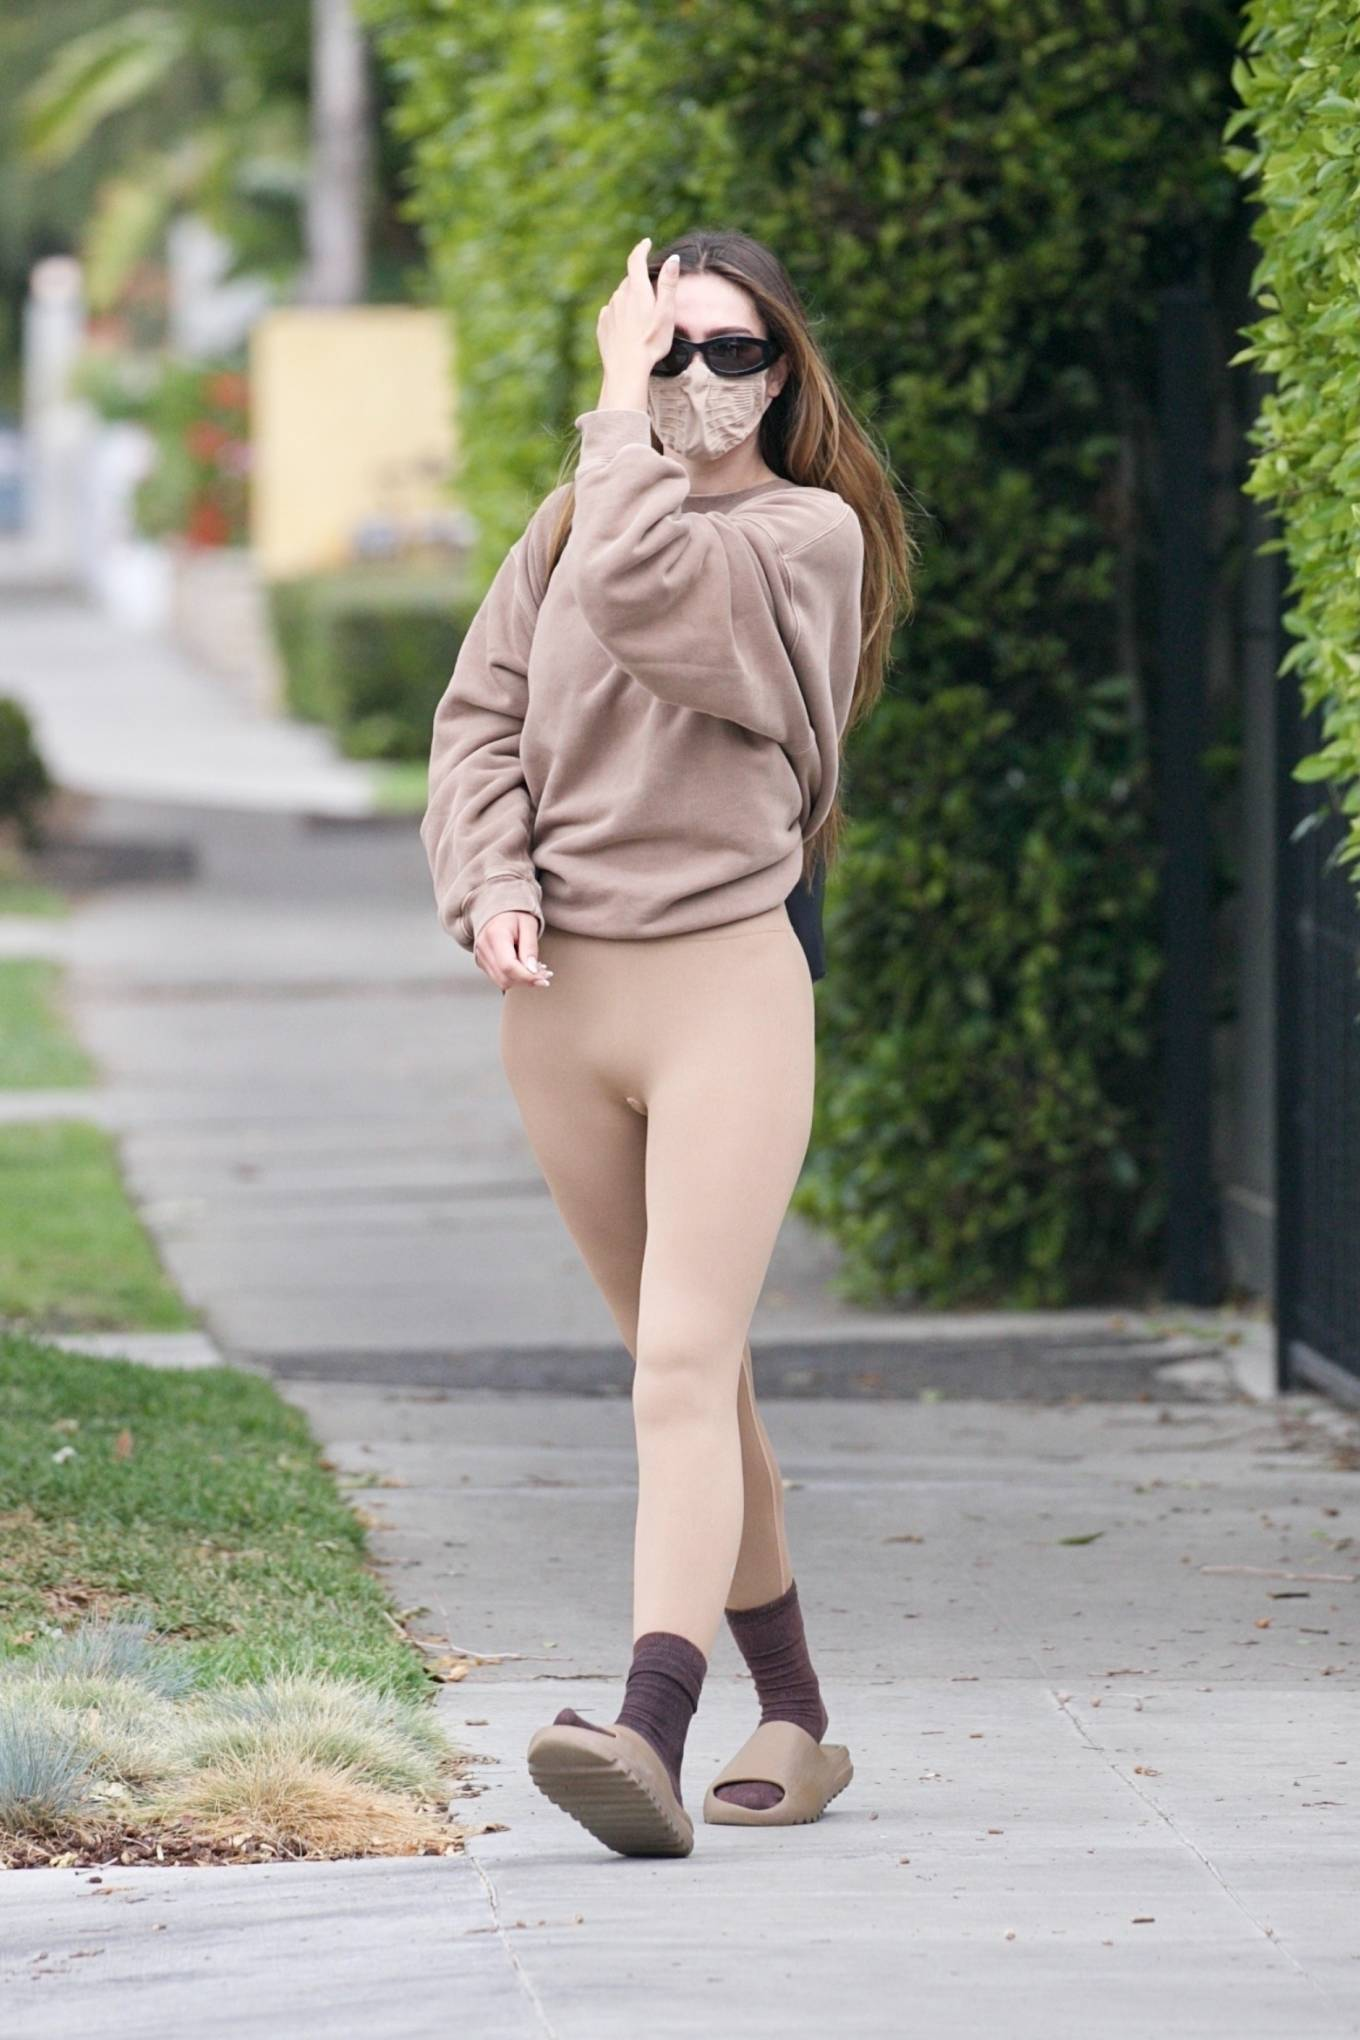 Amelia Gray Hamlin 2021 : Amelia Gray Hamlin – Steps out for pilates session in West Hollywood-15